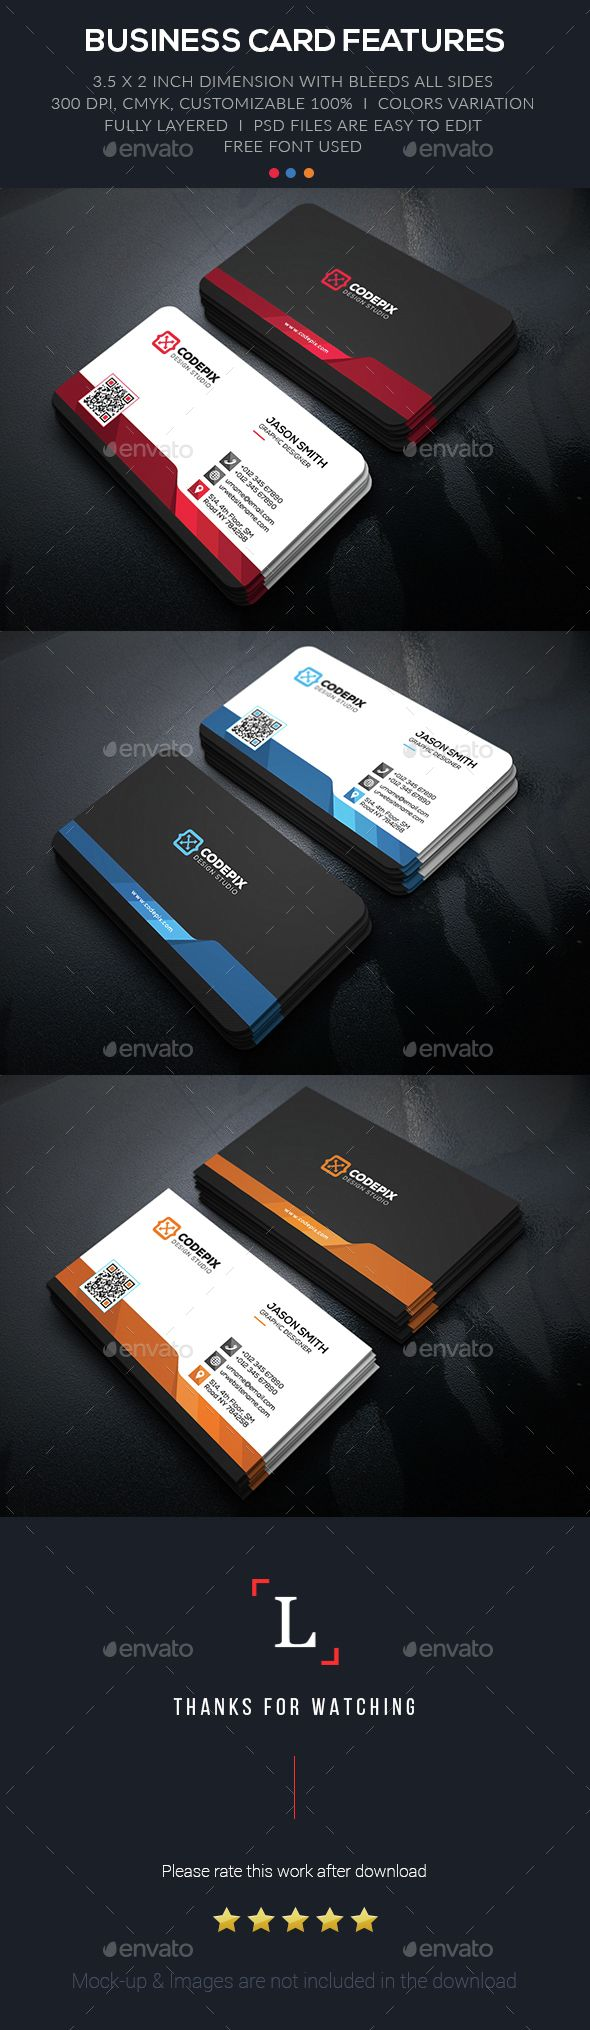 368 best Business Card/ Visiting Card images on Pinterest ...